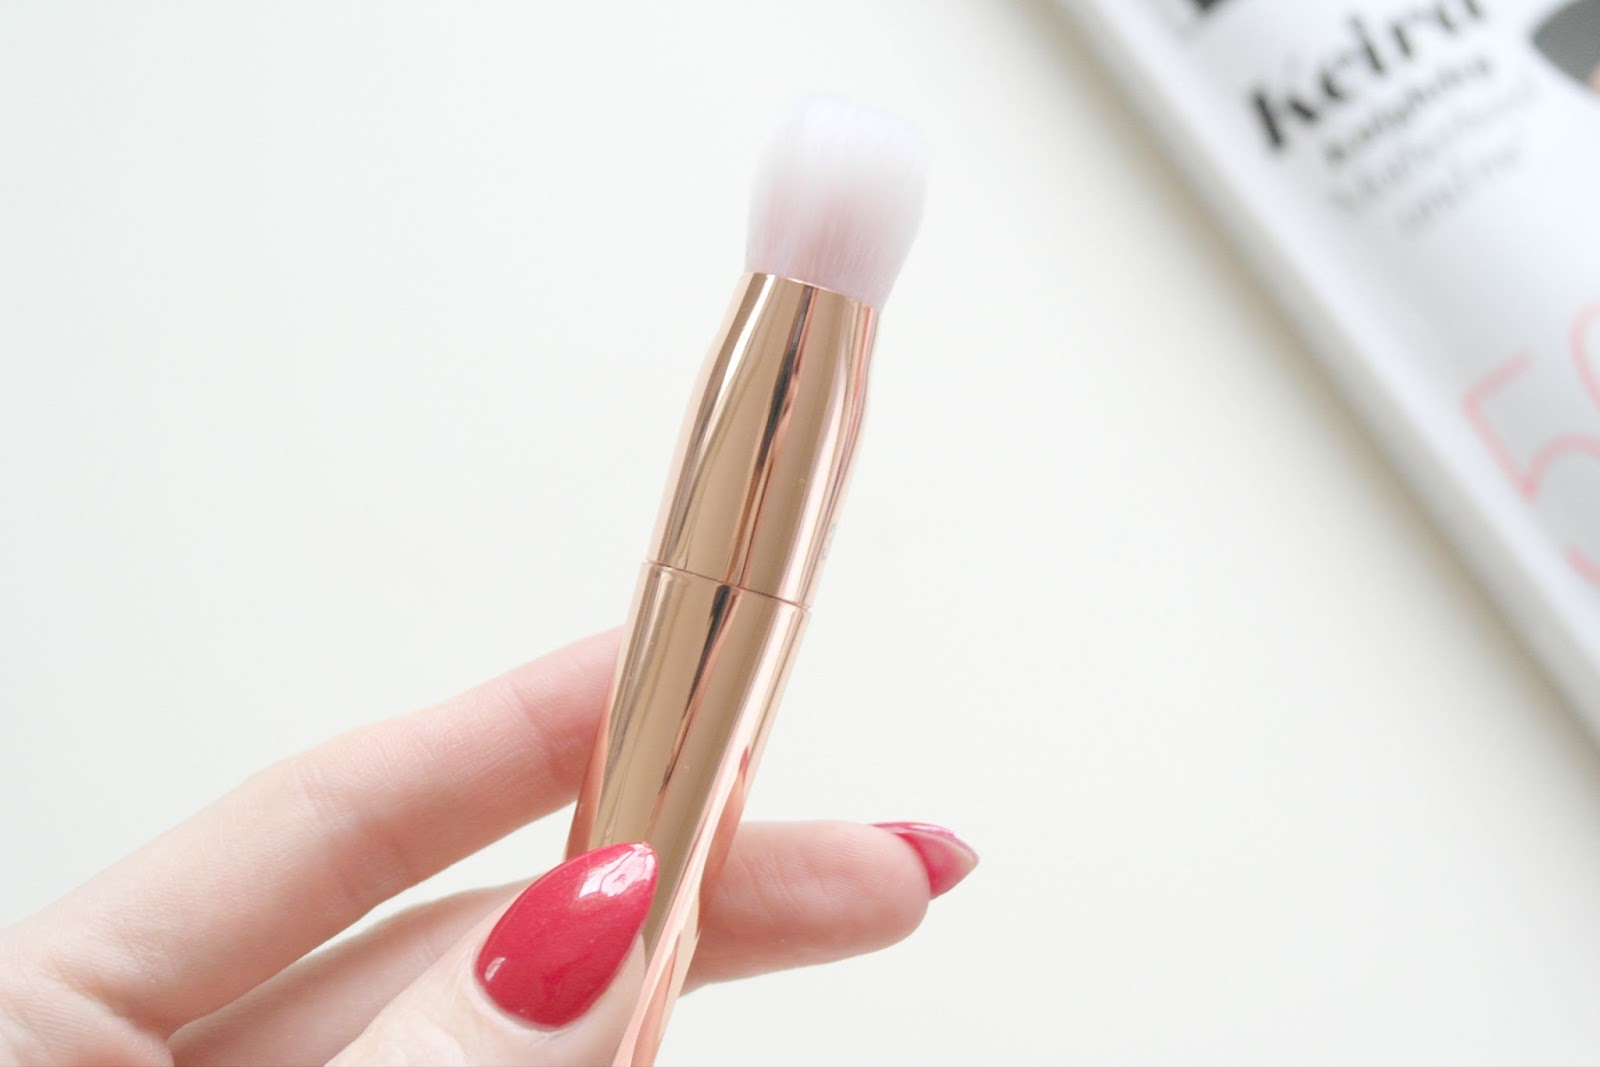 Real Techniques Bold Metals 301 Flat Contour Brush Review by Beauty Blogger